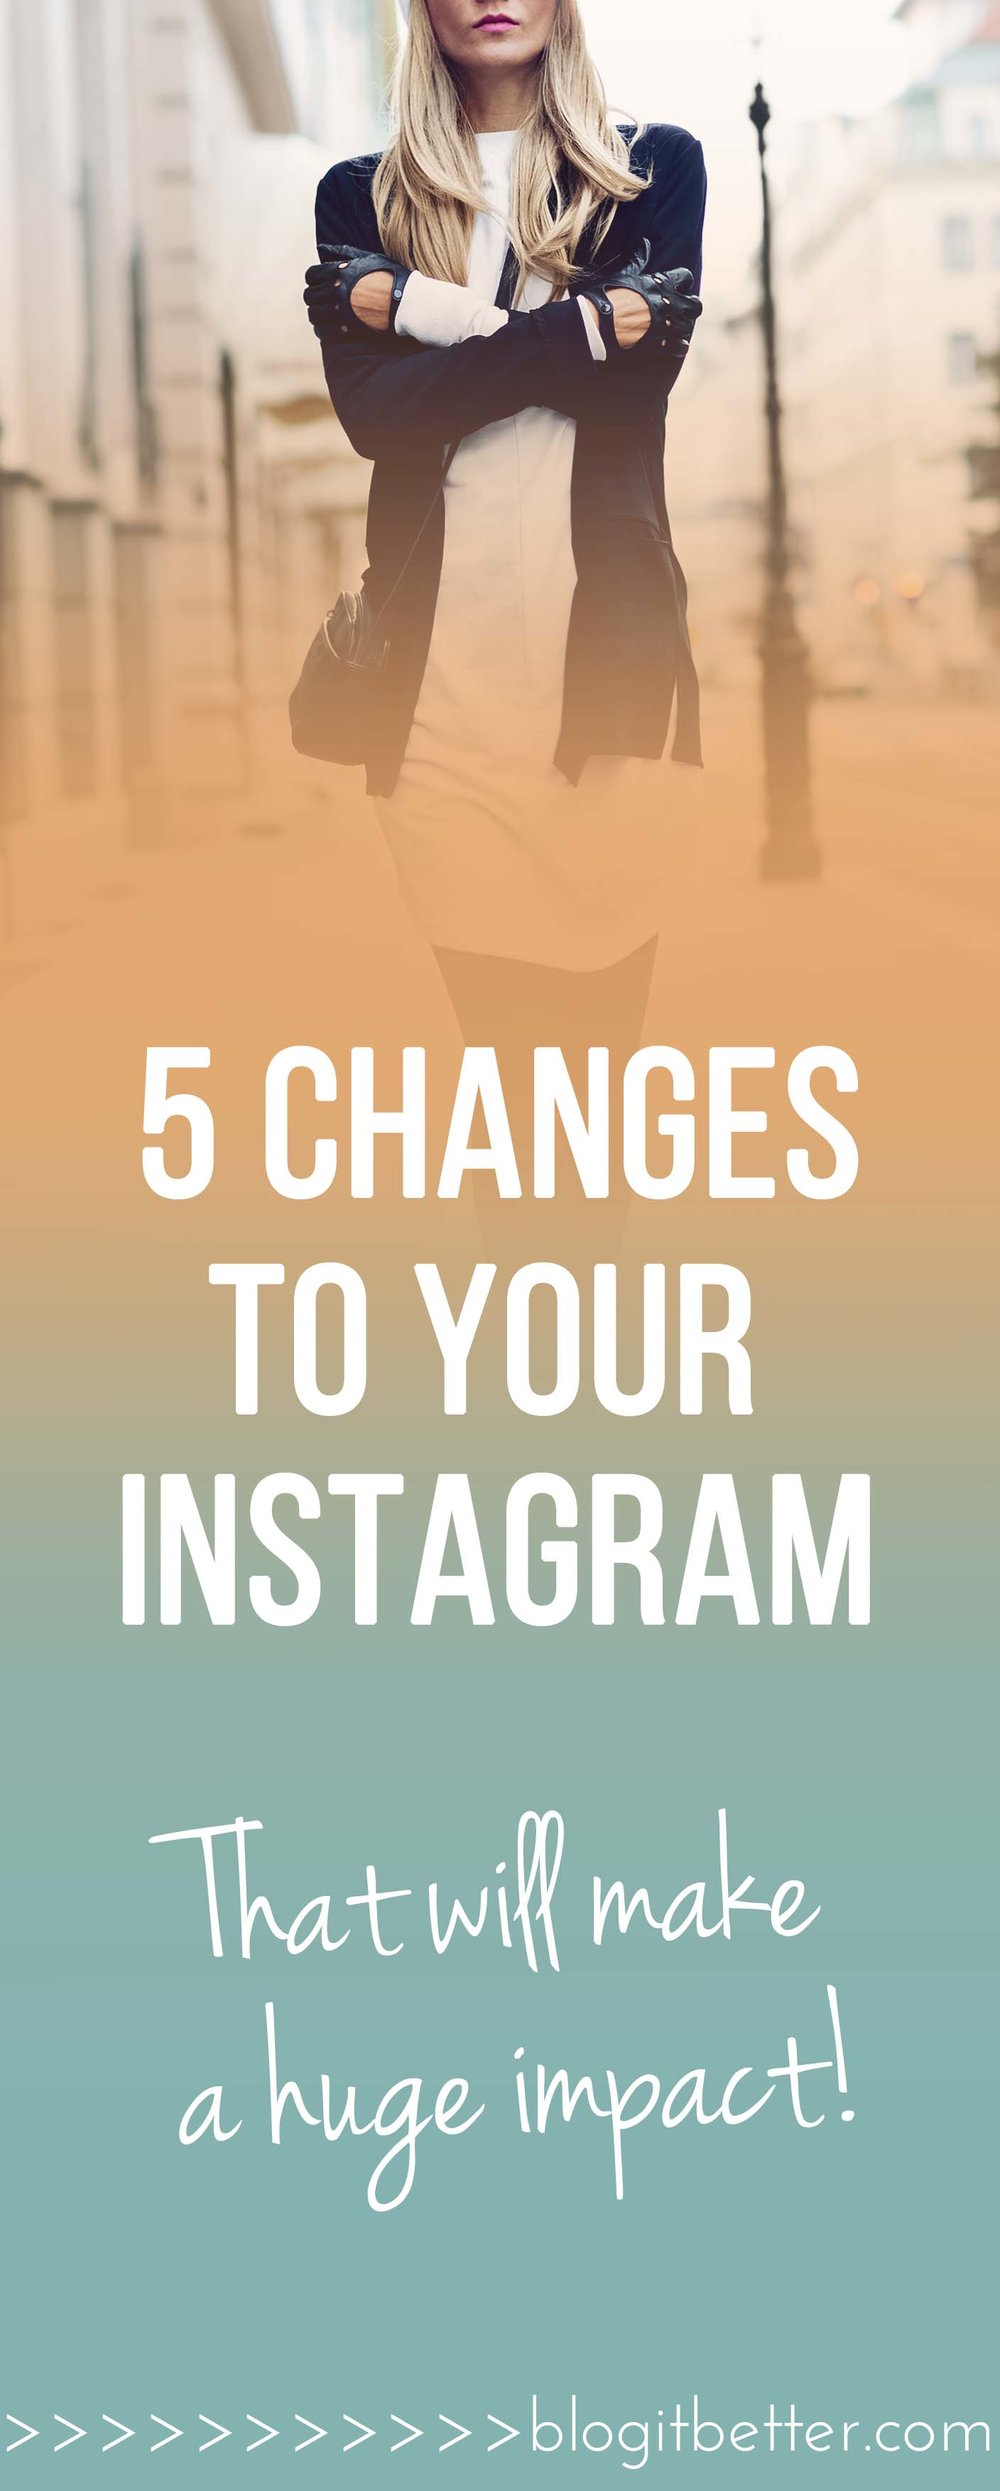 5 Actions You Can Take Right Now to Increase Your Instagram Following, Boost Traffic to Your Blog & Build Engagament!